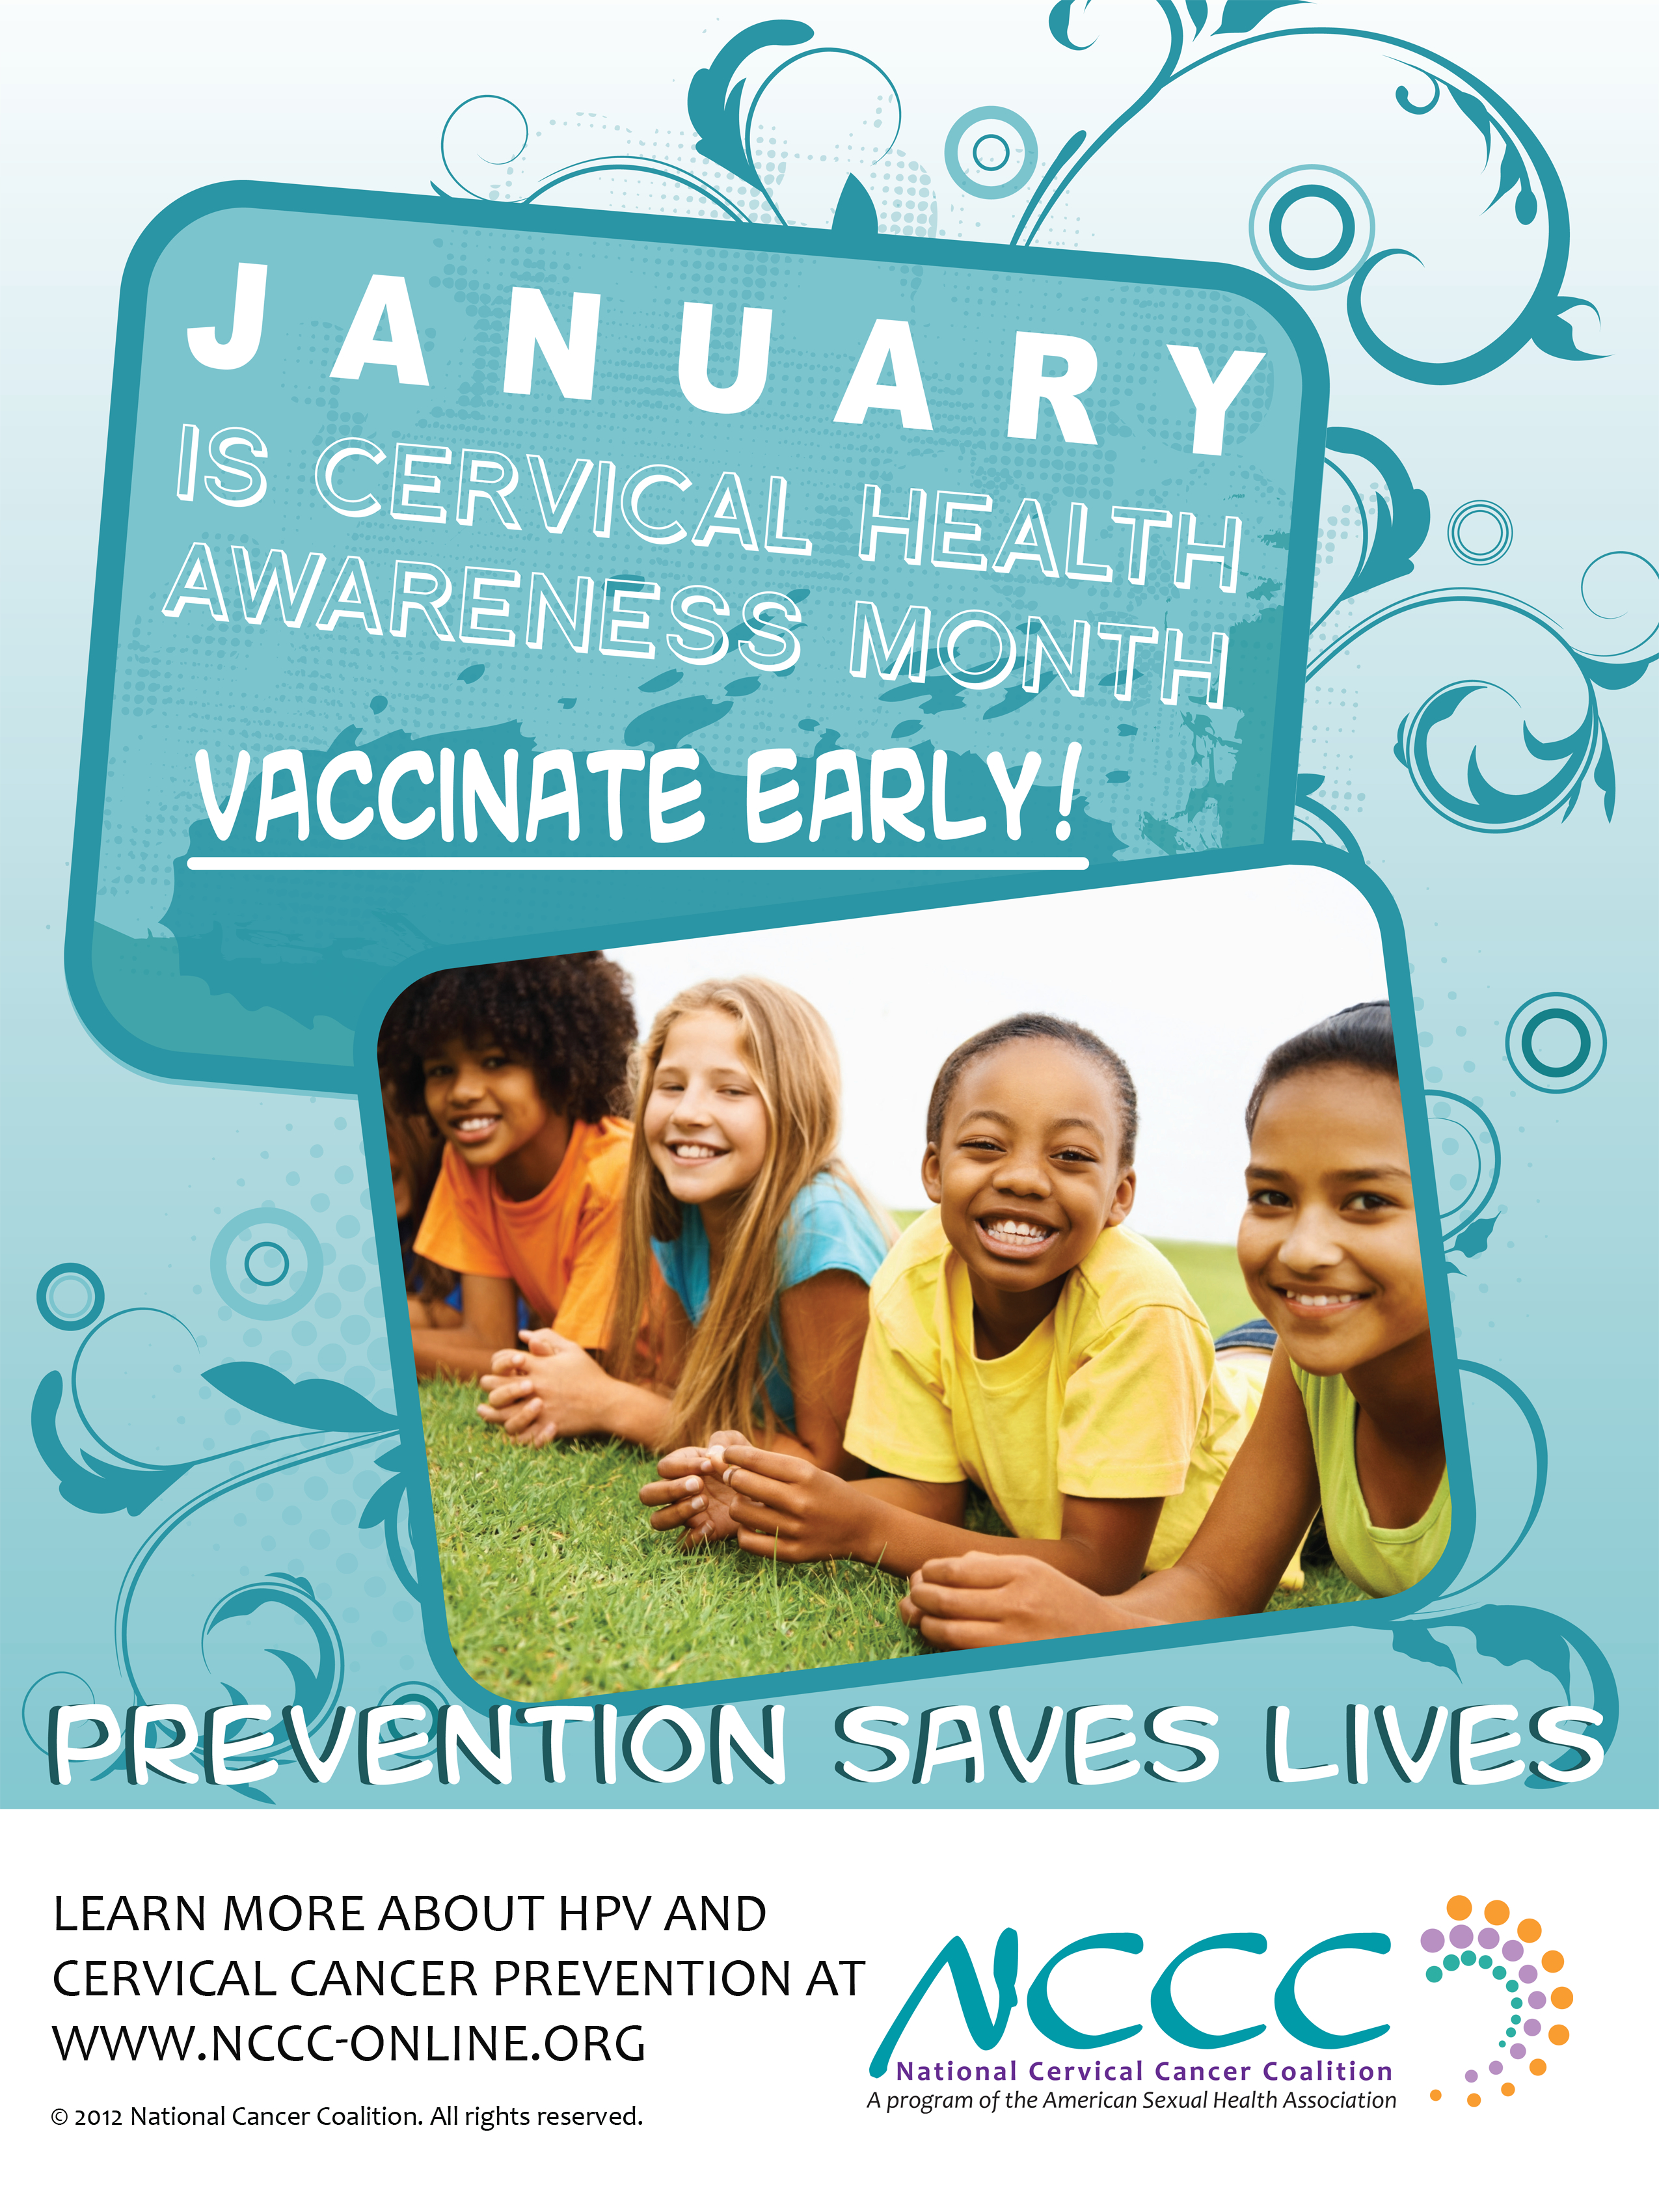 NCCC_January_Poster_Vaccinate